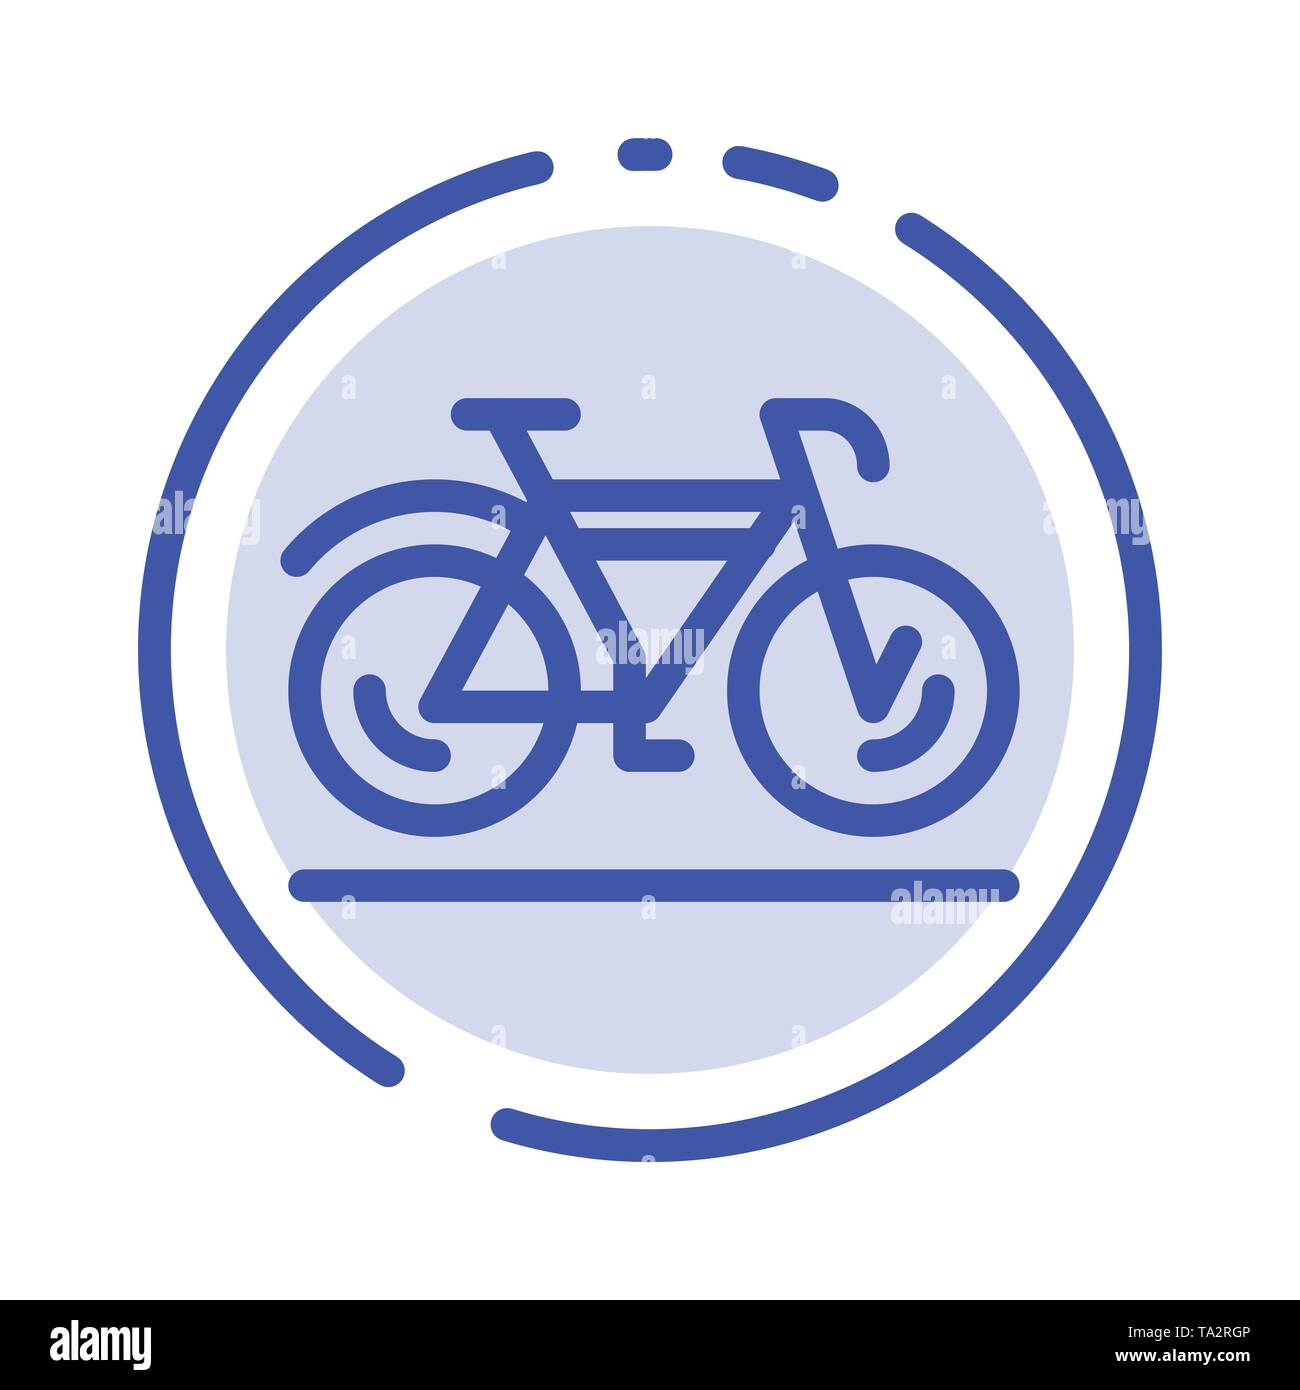 Bicycle, Movement, Walk, Sport Blue Dotted Line Line Icon - Stock Image